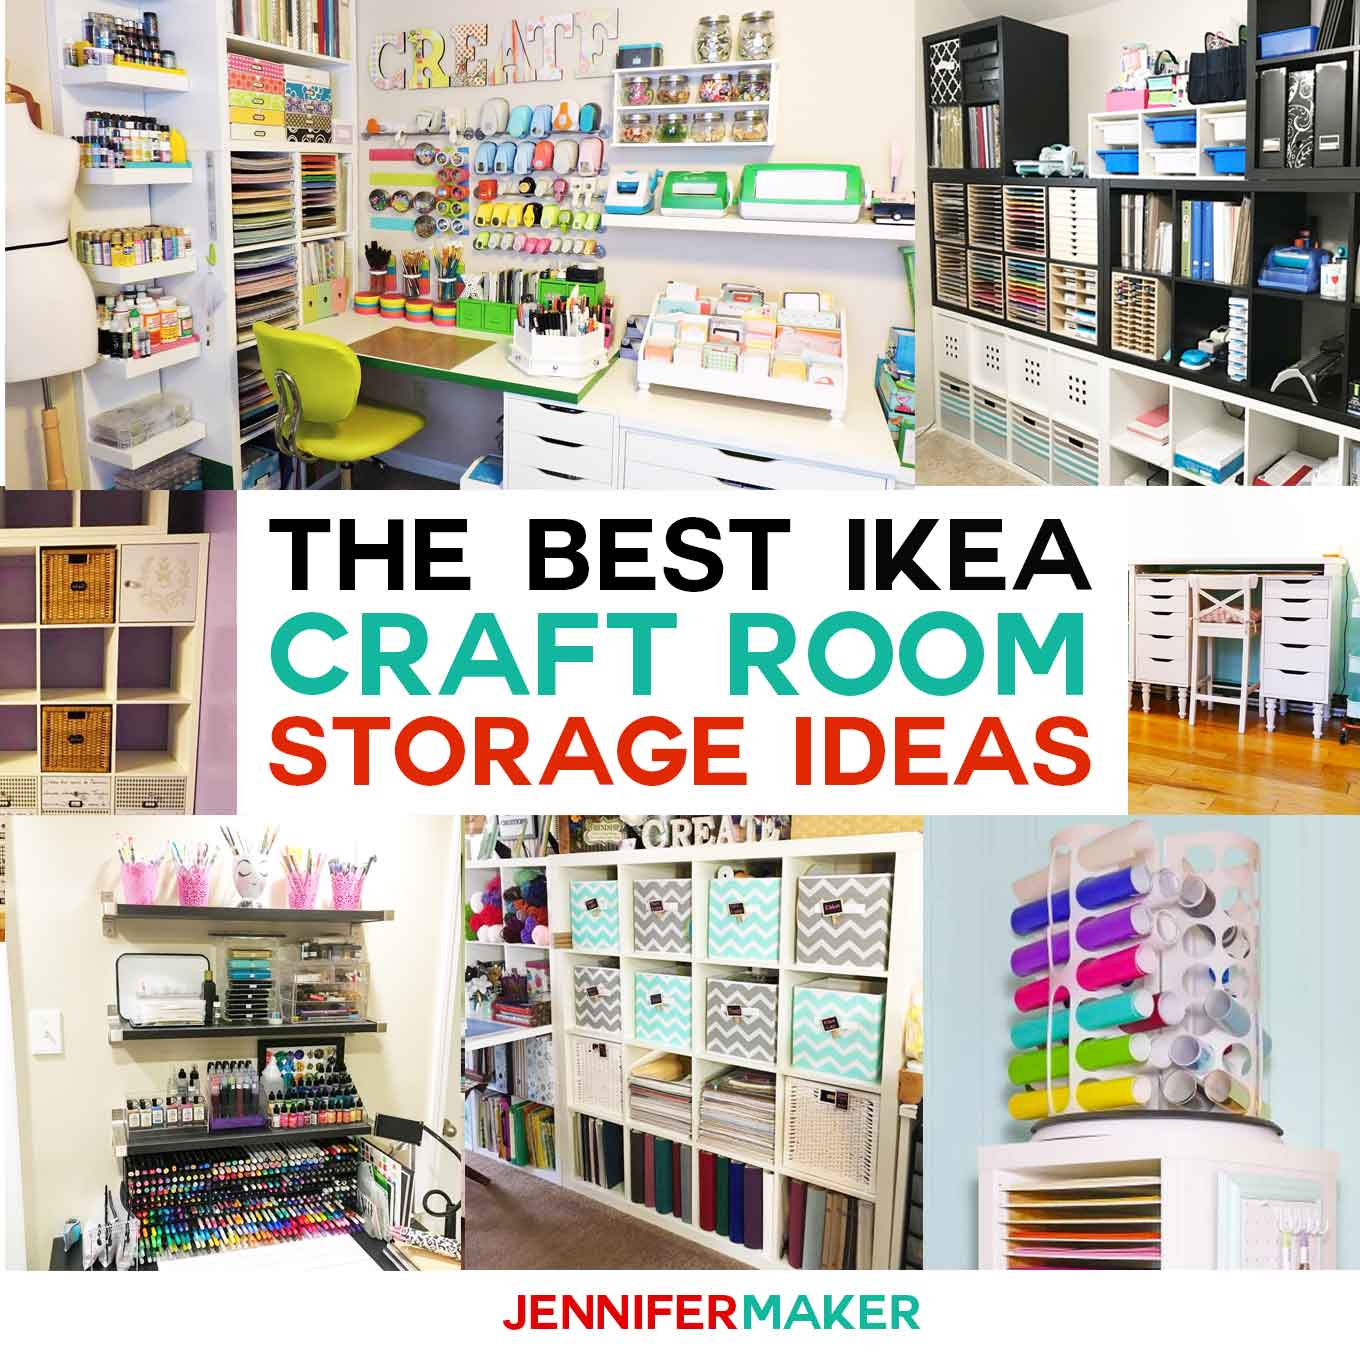 Ikea Box Holder The Best Ikea Craft Room Storage Shelves Ideas Jennifer Maker